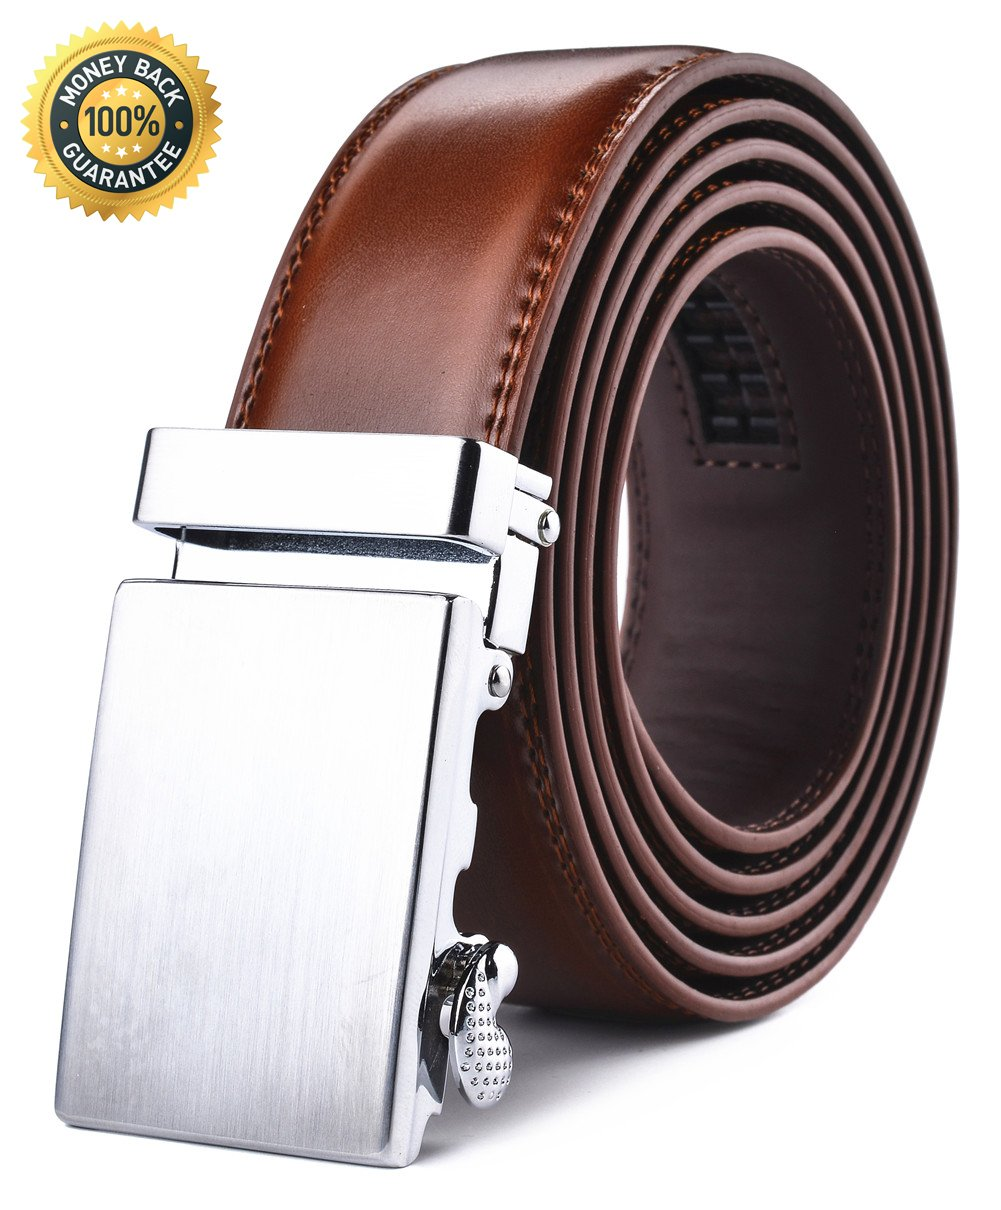 Men's Belt,XHT Automatic Slide Ratchet Belt for Men with Genuine Leather 1 3/8,Trim to Fit